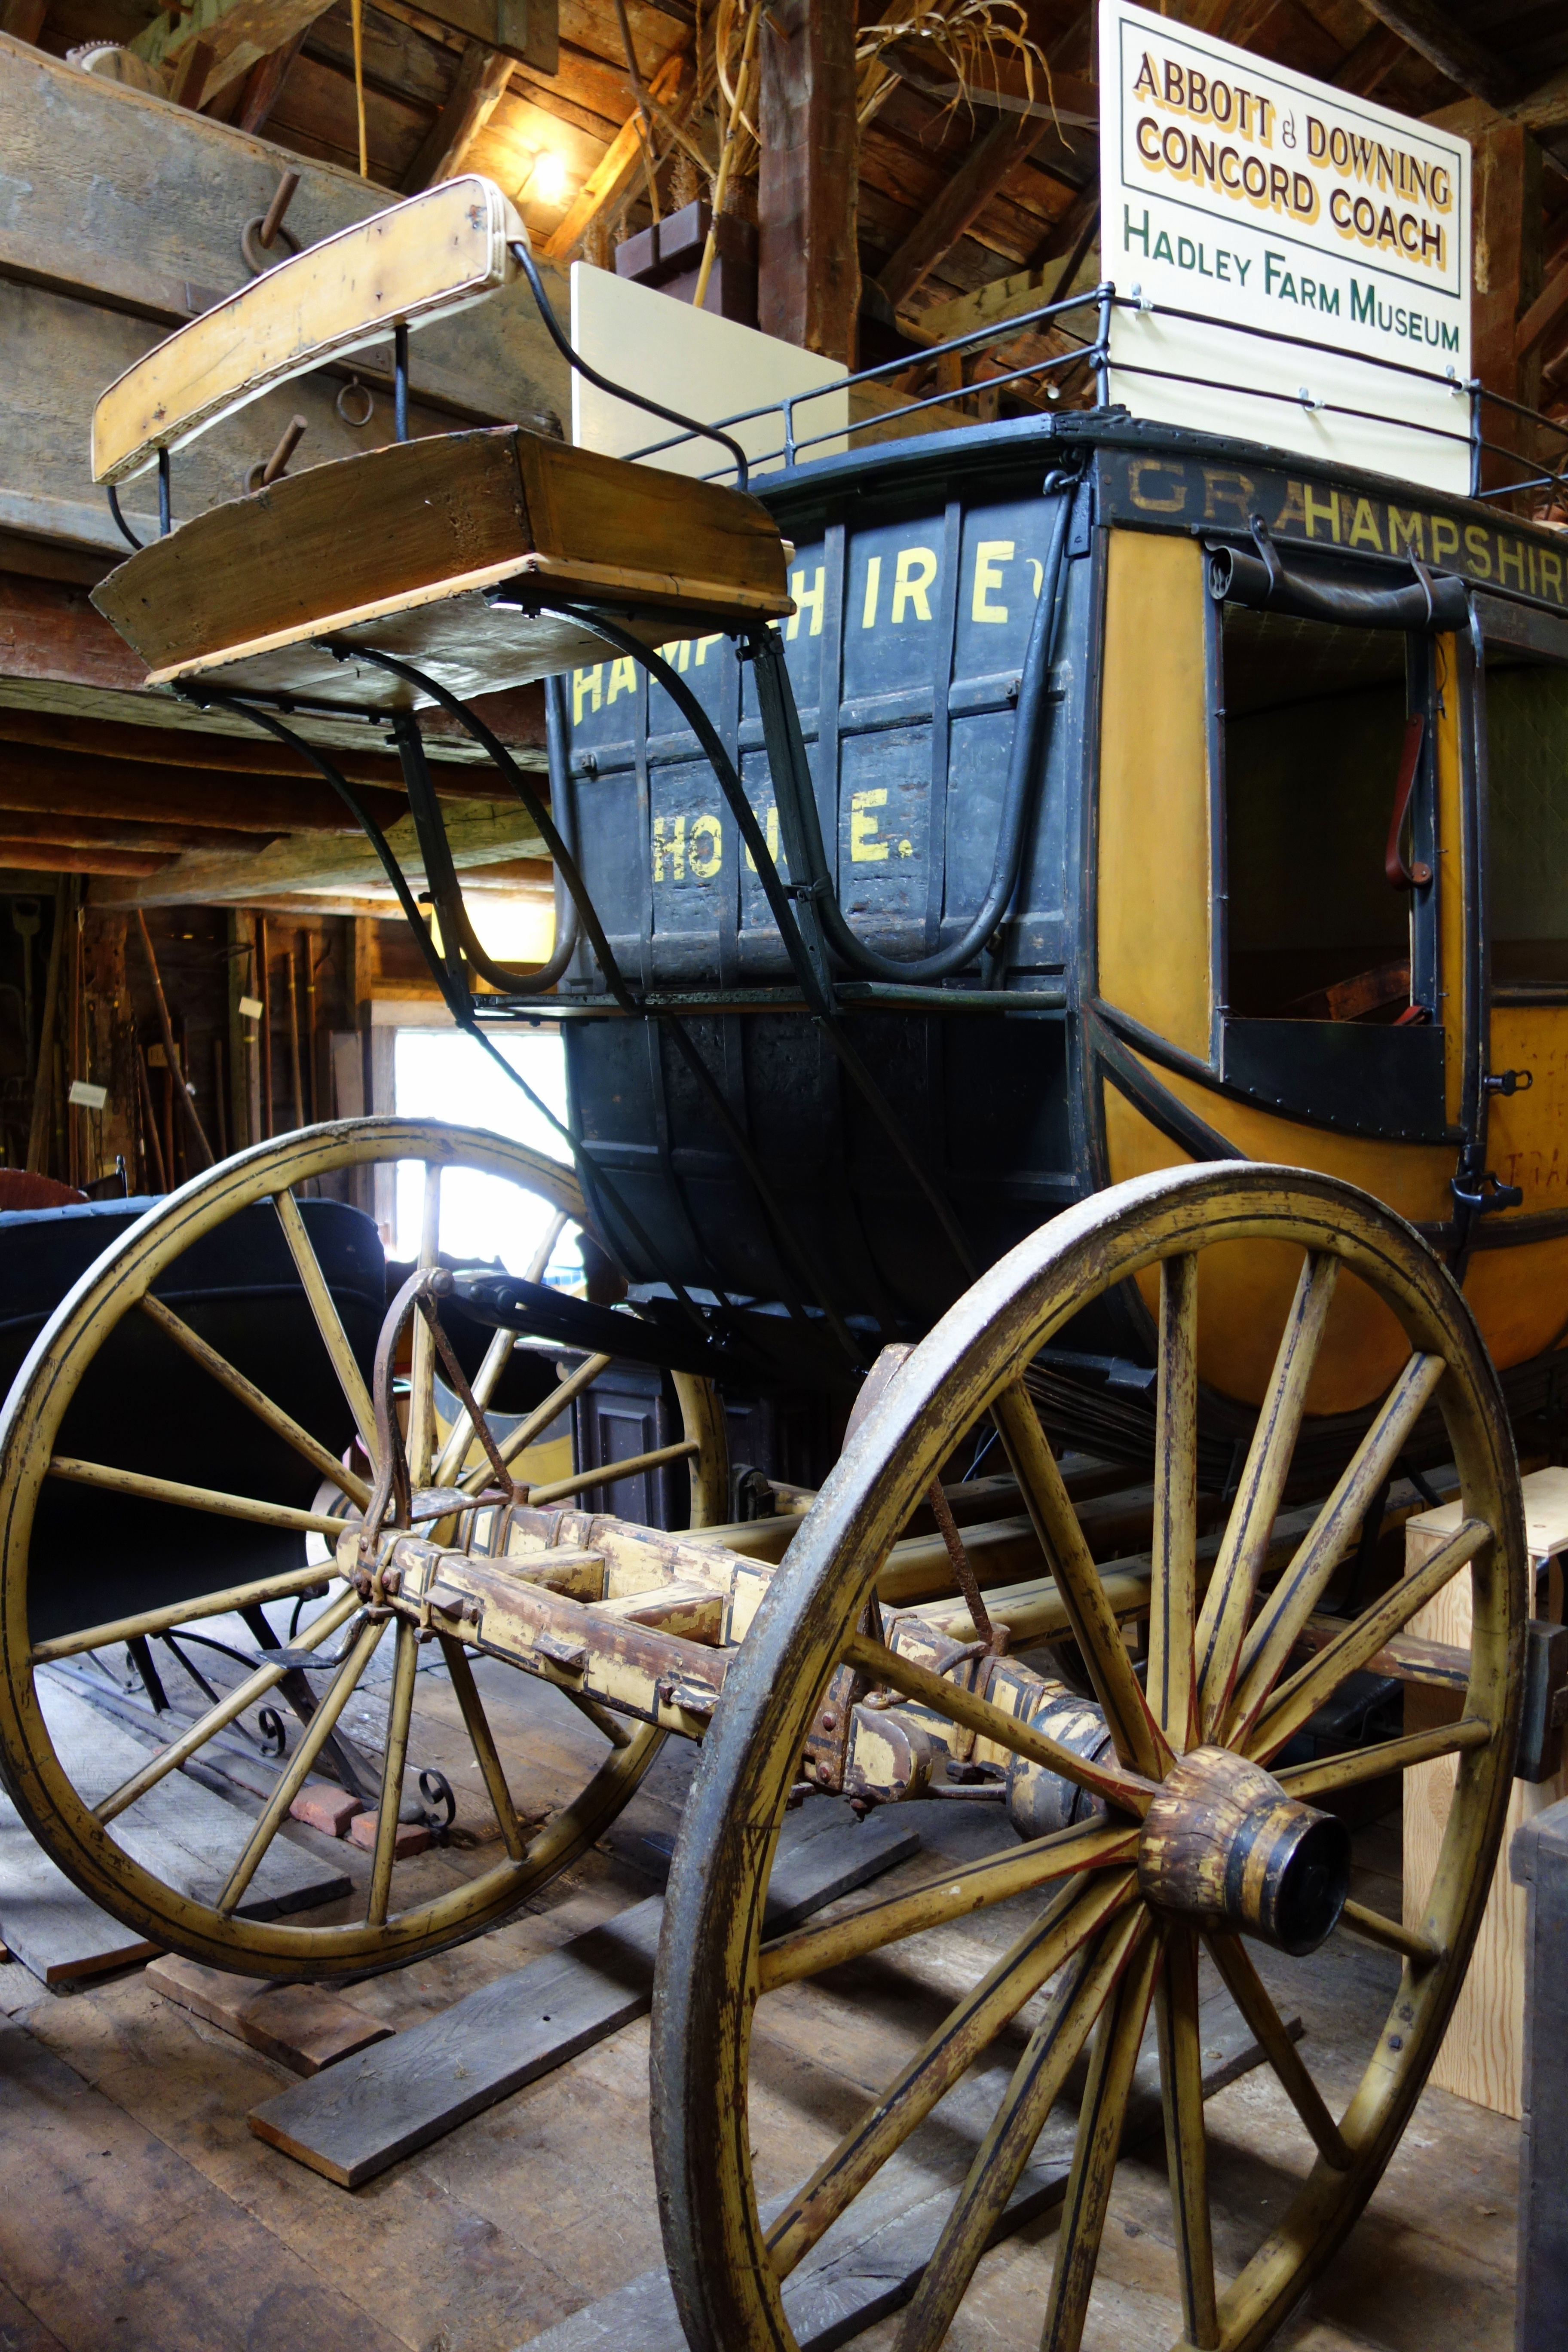 file:abbott & downing concord coach, view 3 - hadley farm museum